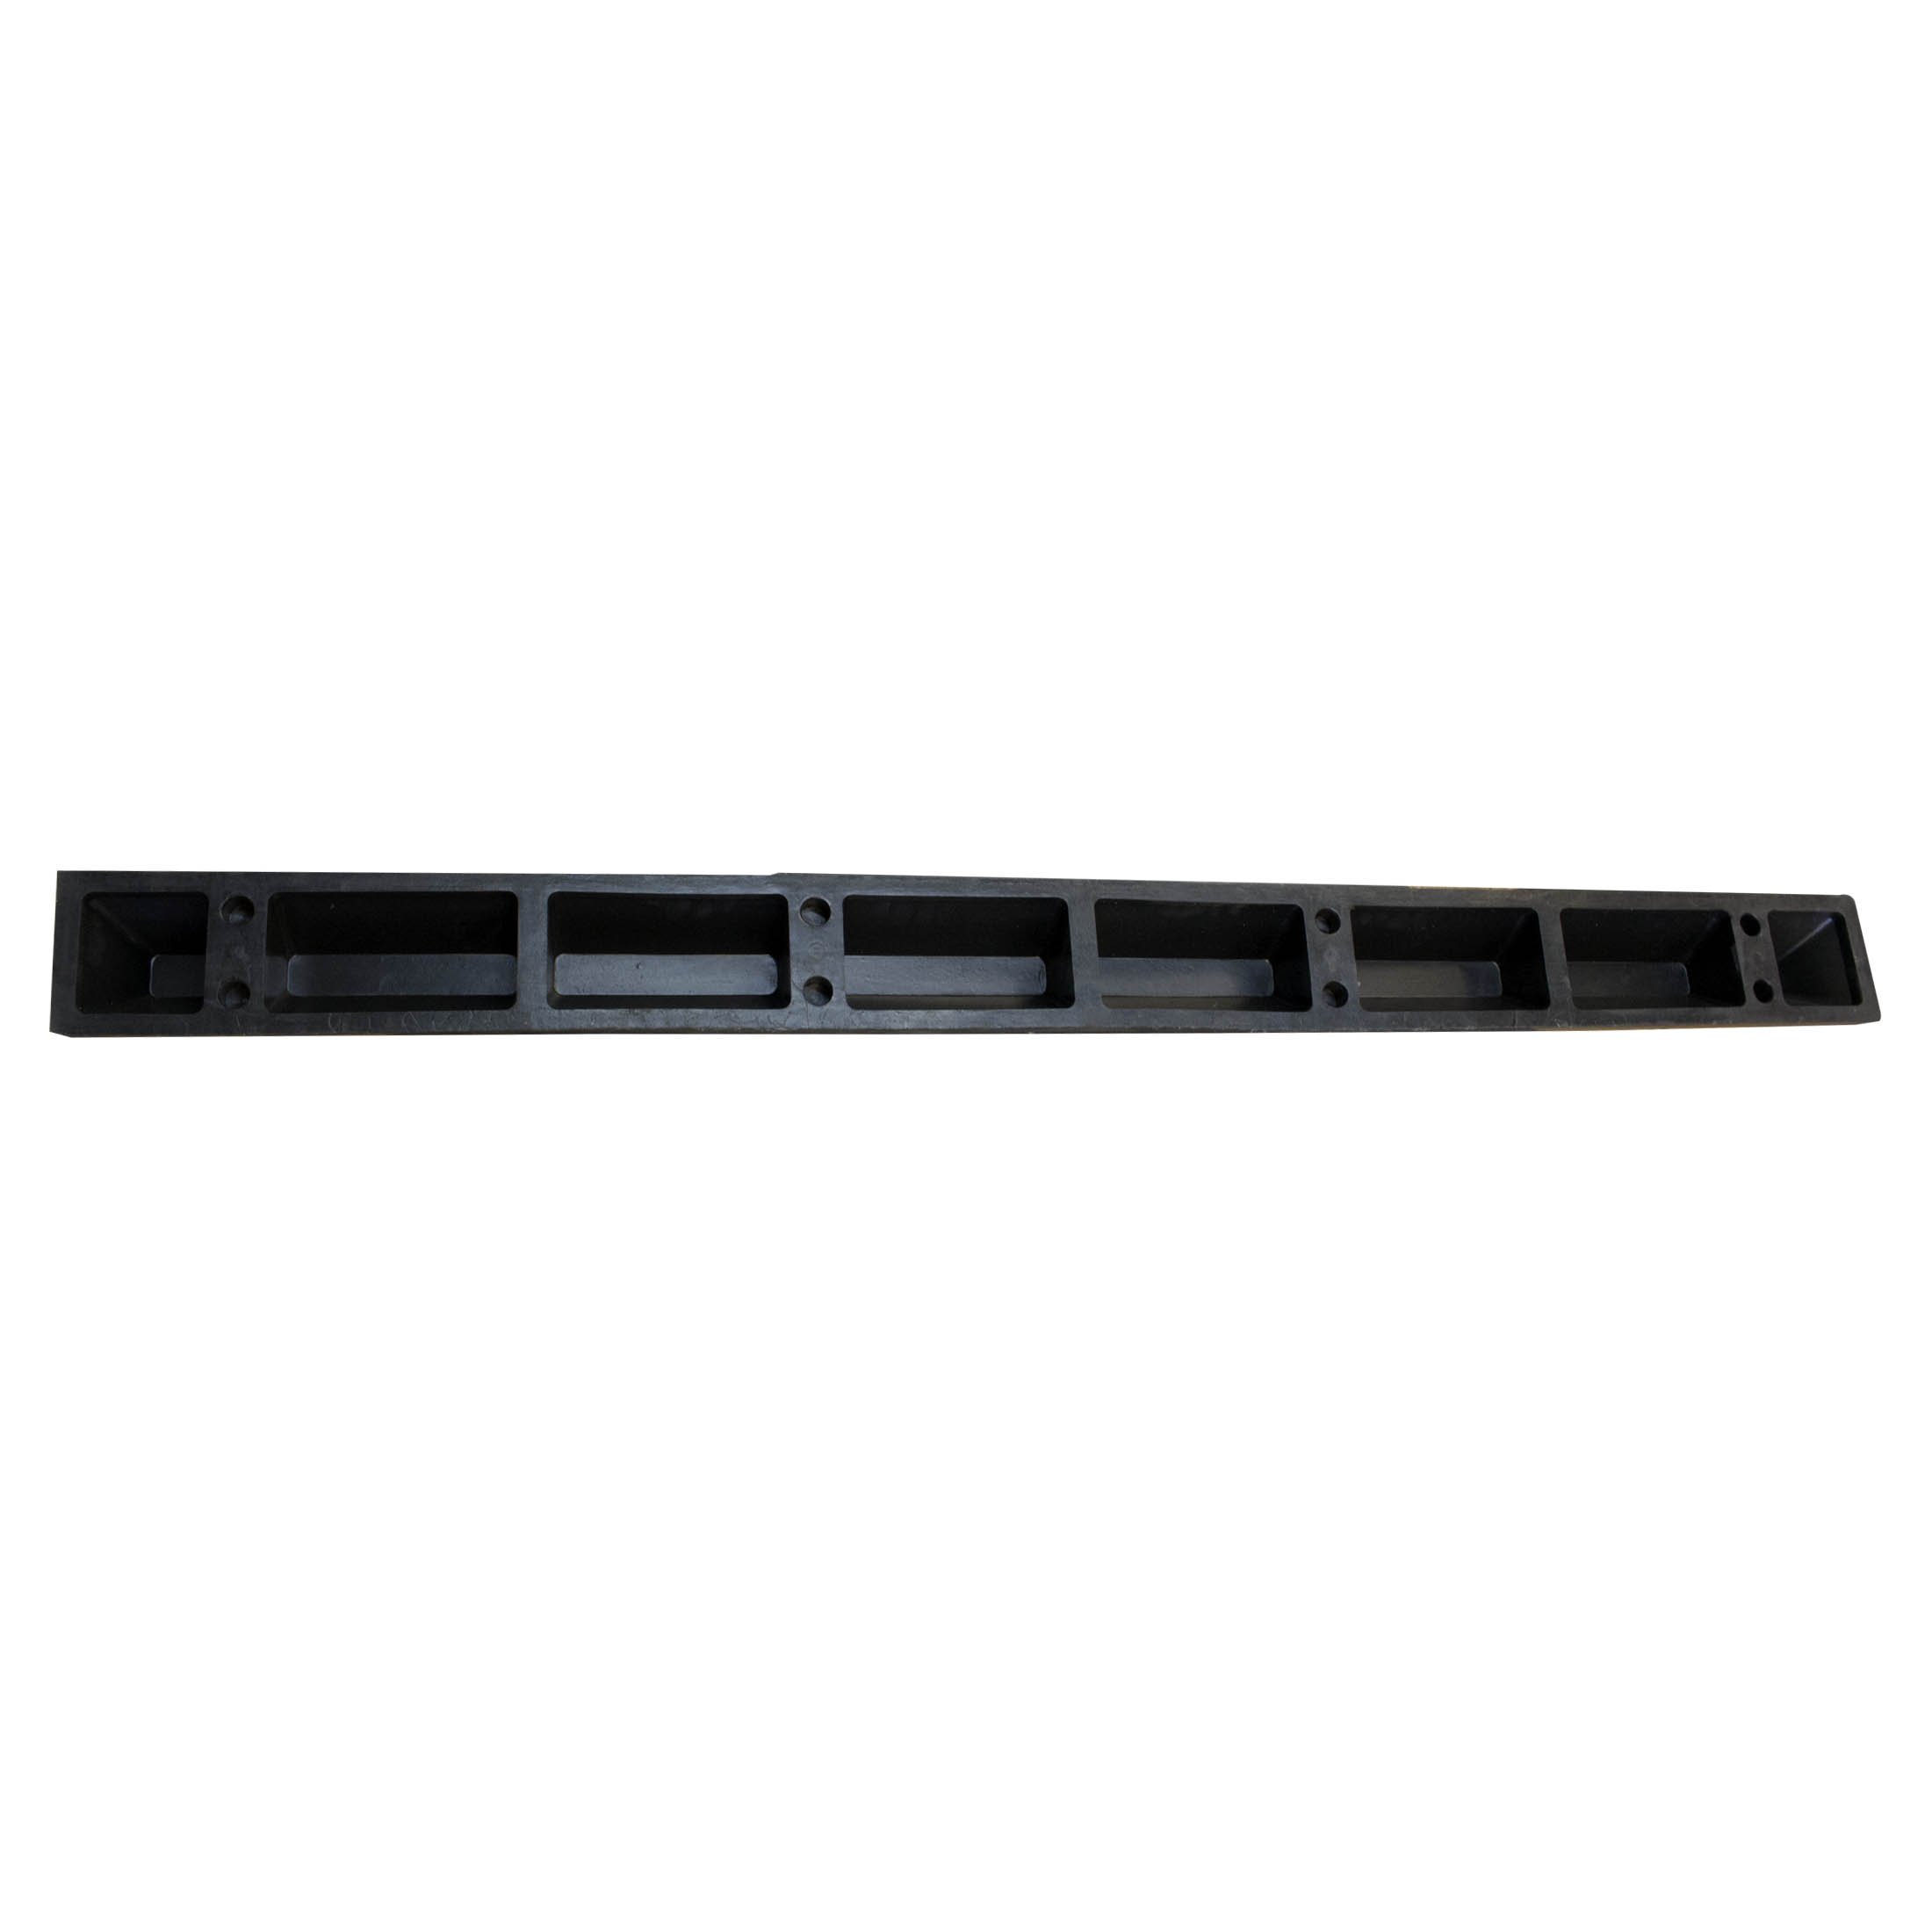 RK-BP72 Heavy Duty Rubber Parking Curb, Parking Block, 72 -Inch for Car, Truck, RV and Trailer Stop Aid by RK (Image #3)